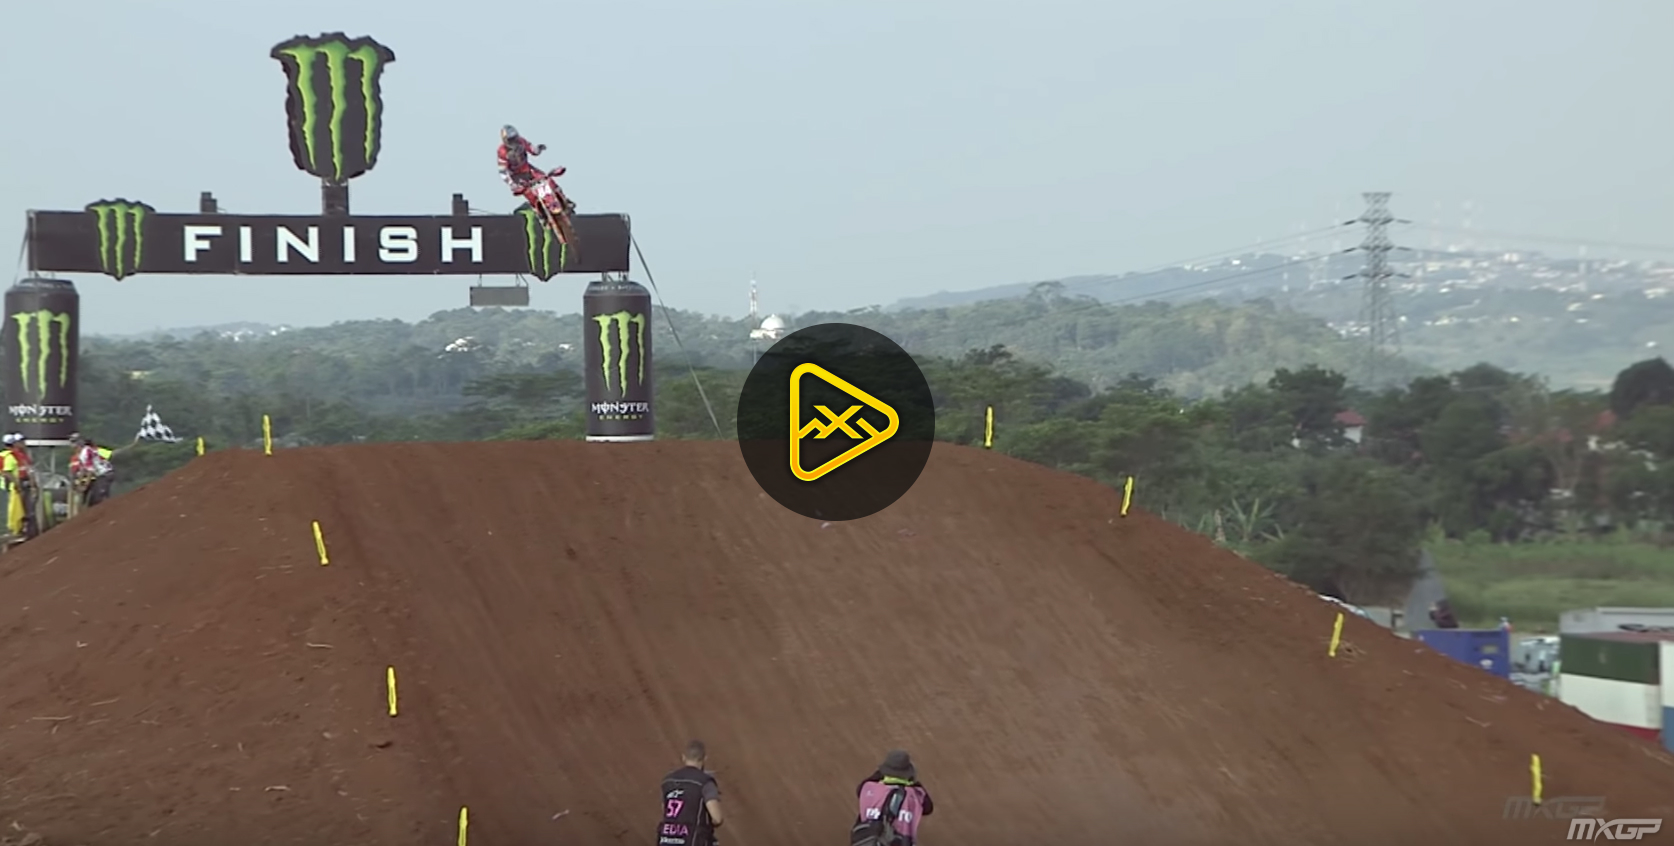 2018 MXGP of Asia Qualifying Highlights